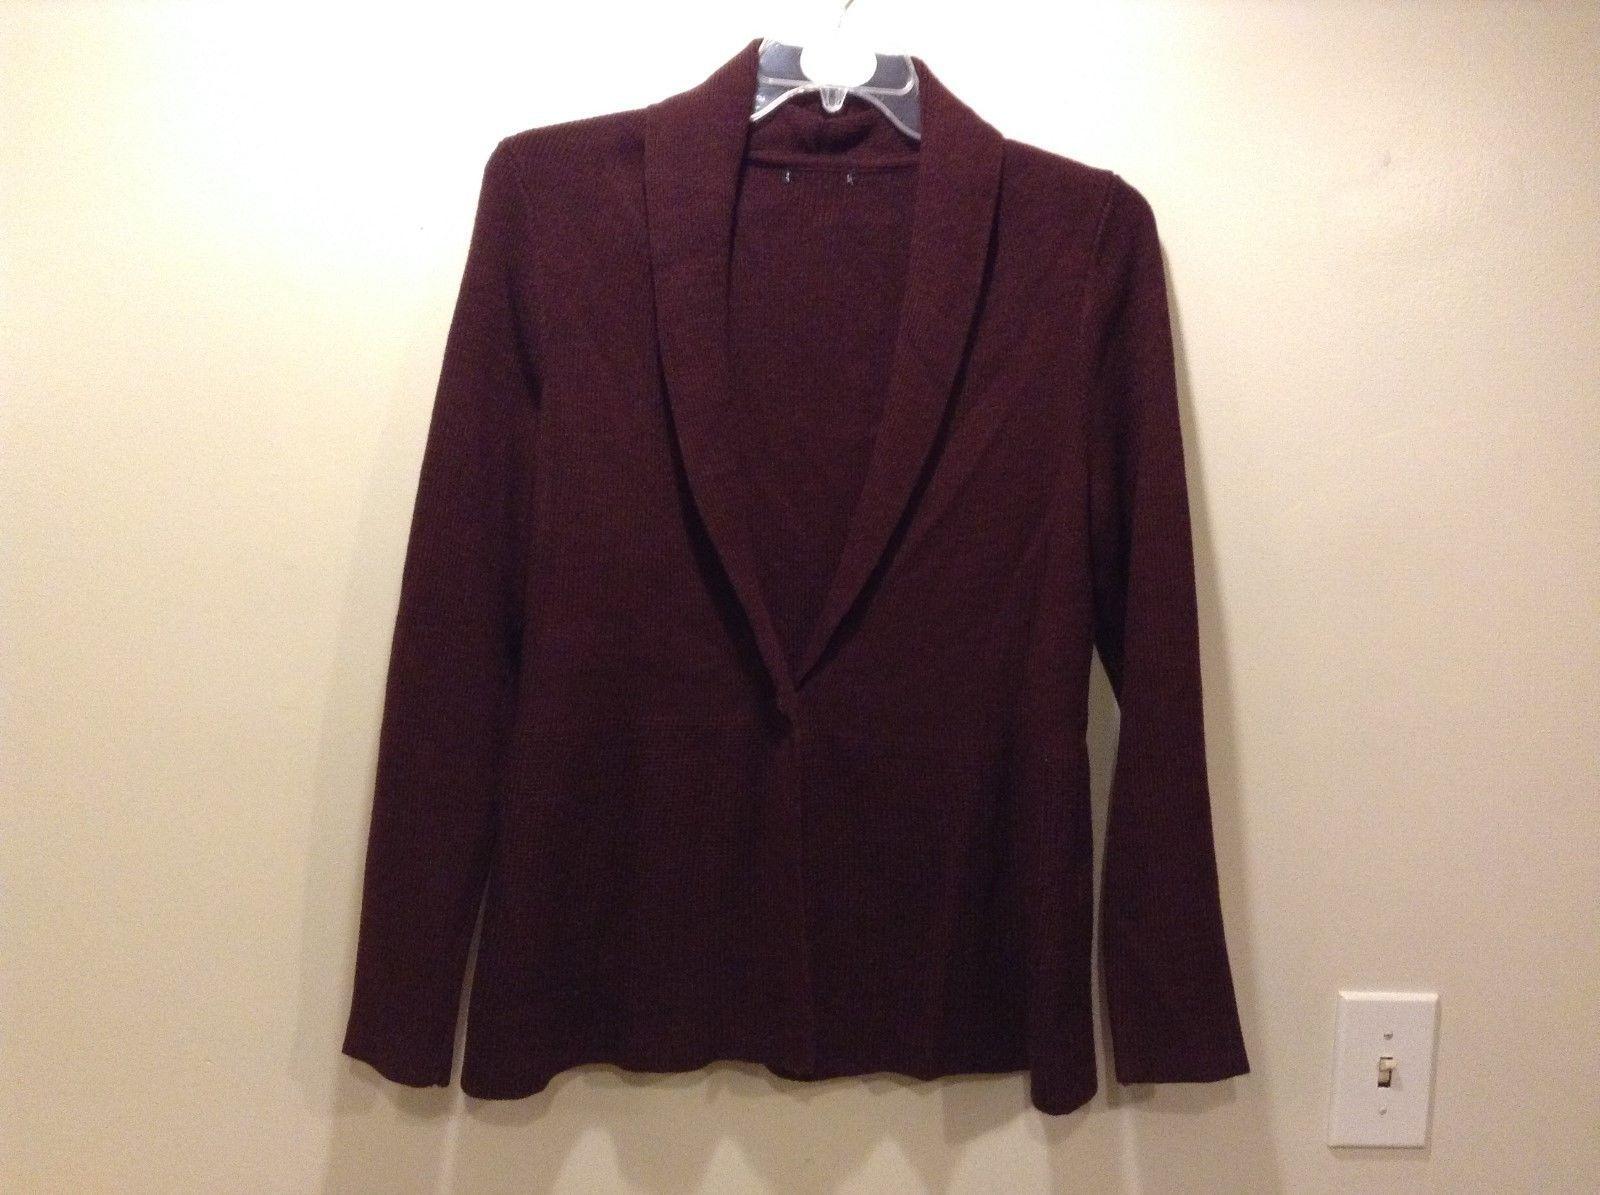 H&M Low Front Collared Burgundy Sweater